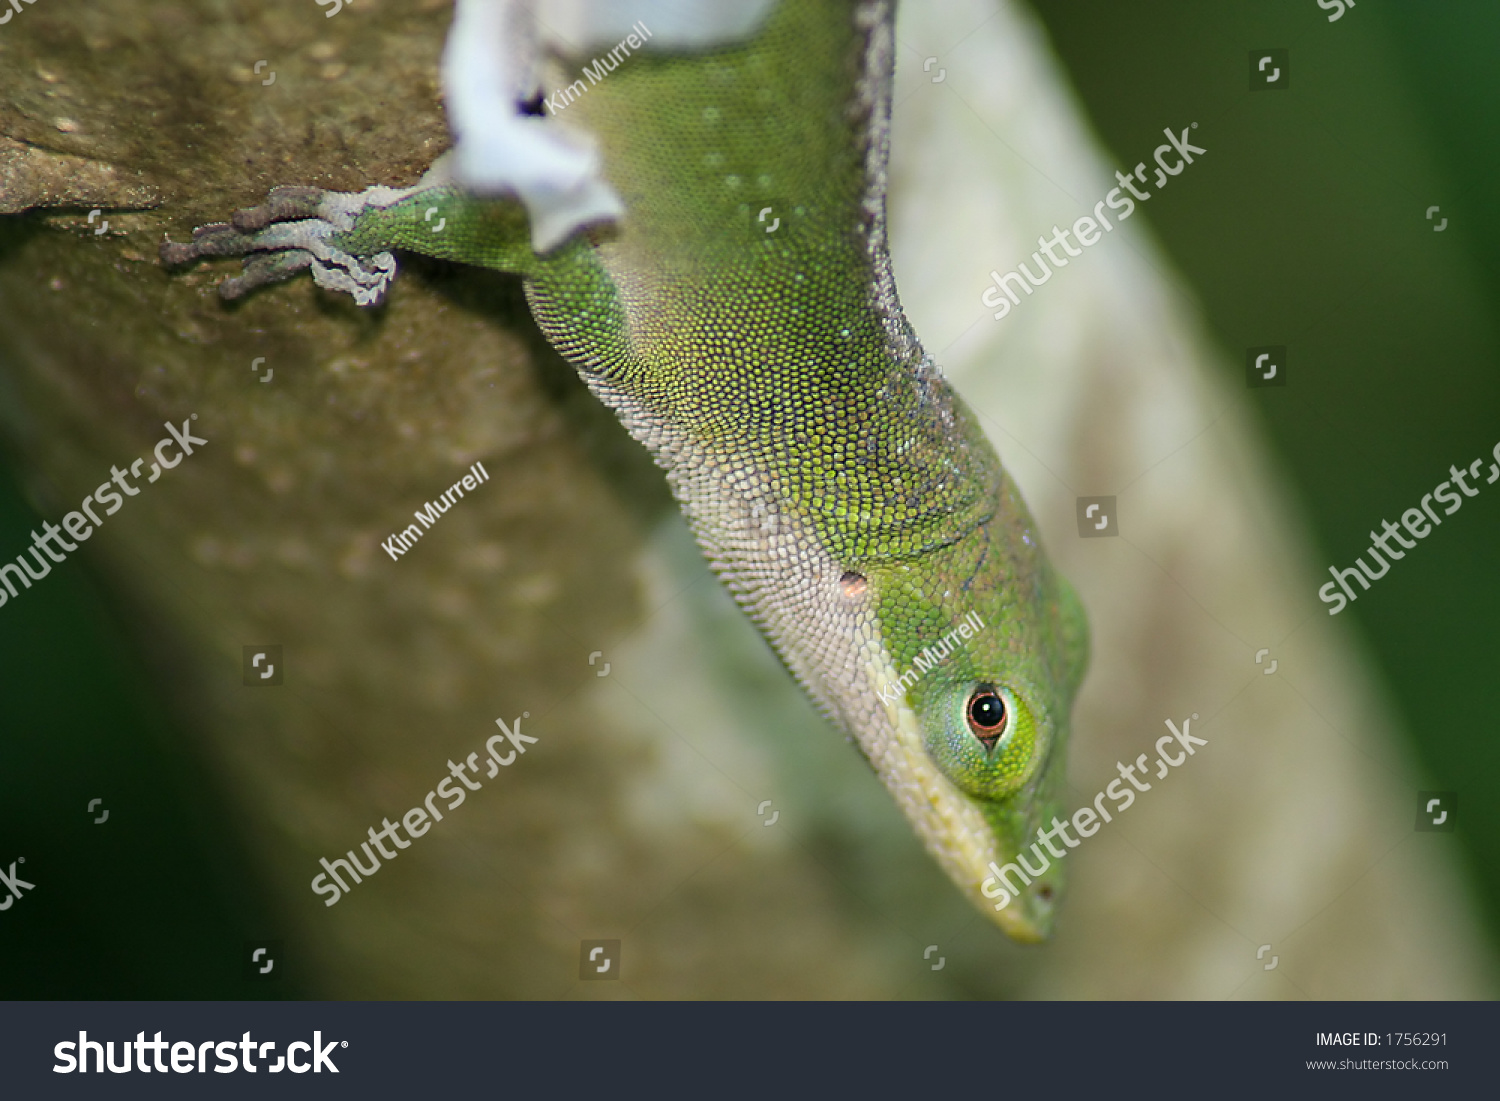 Anole Lizard Shedding It'S Skin Stock Photo 1756291 ...